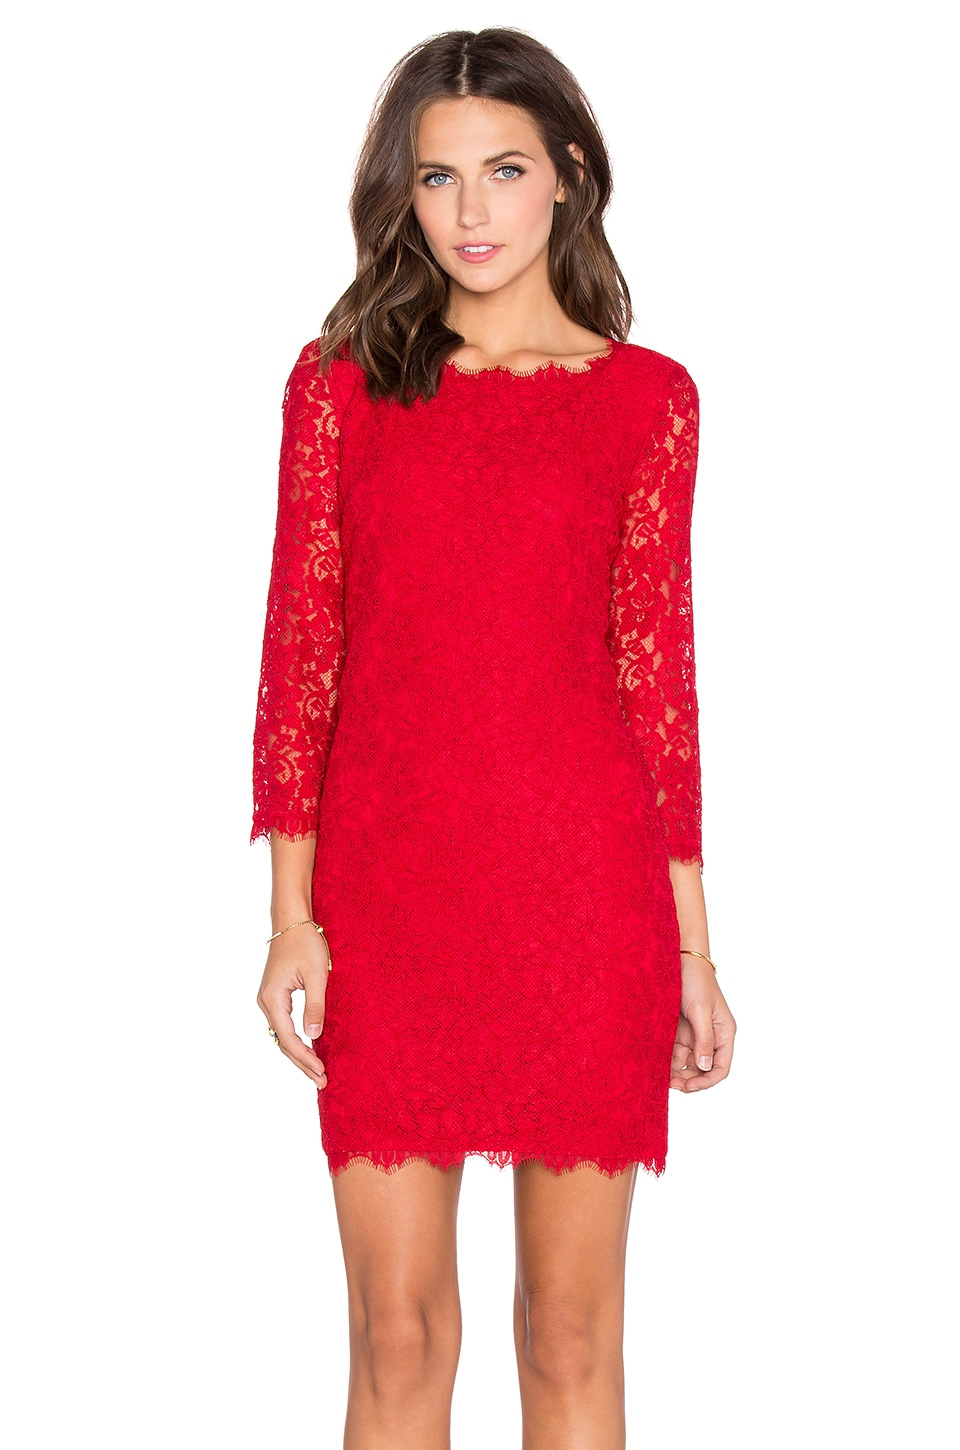 Diane von Furstenberg Zarita Lace Mini Dress in Lacquer Red | REVOLVE